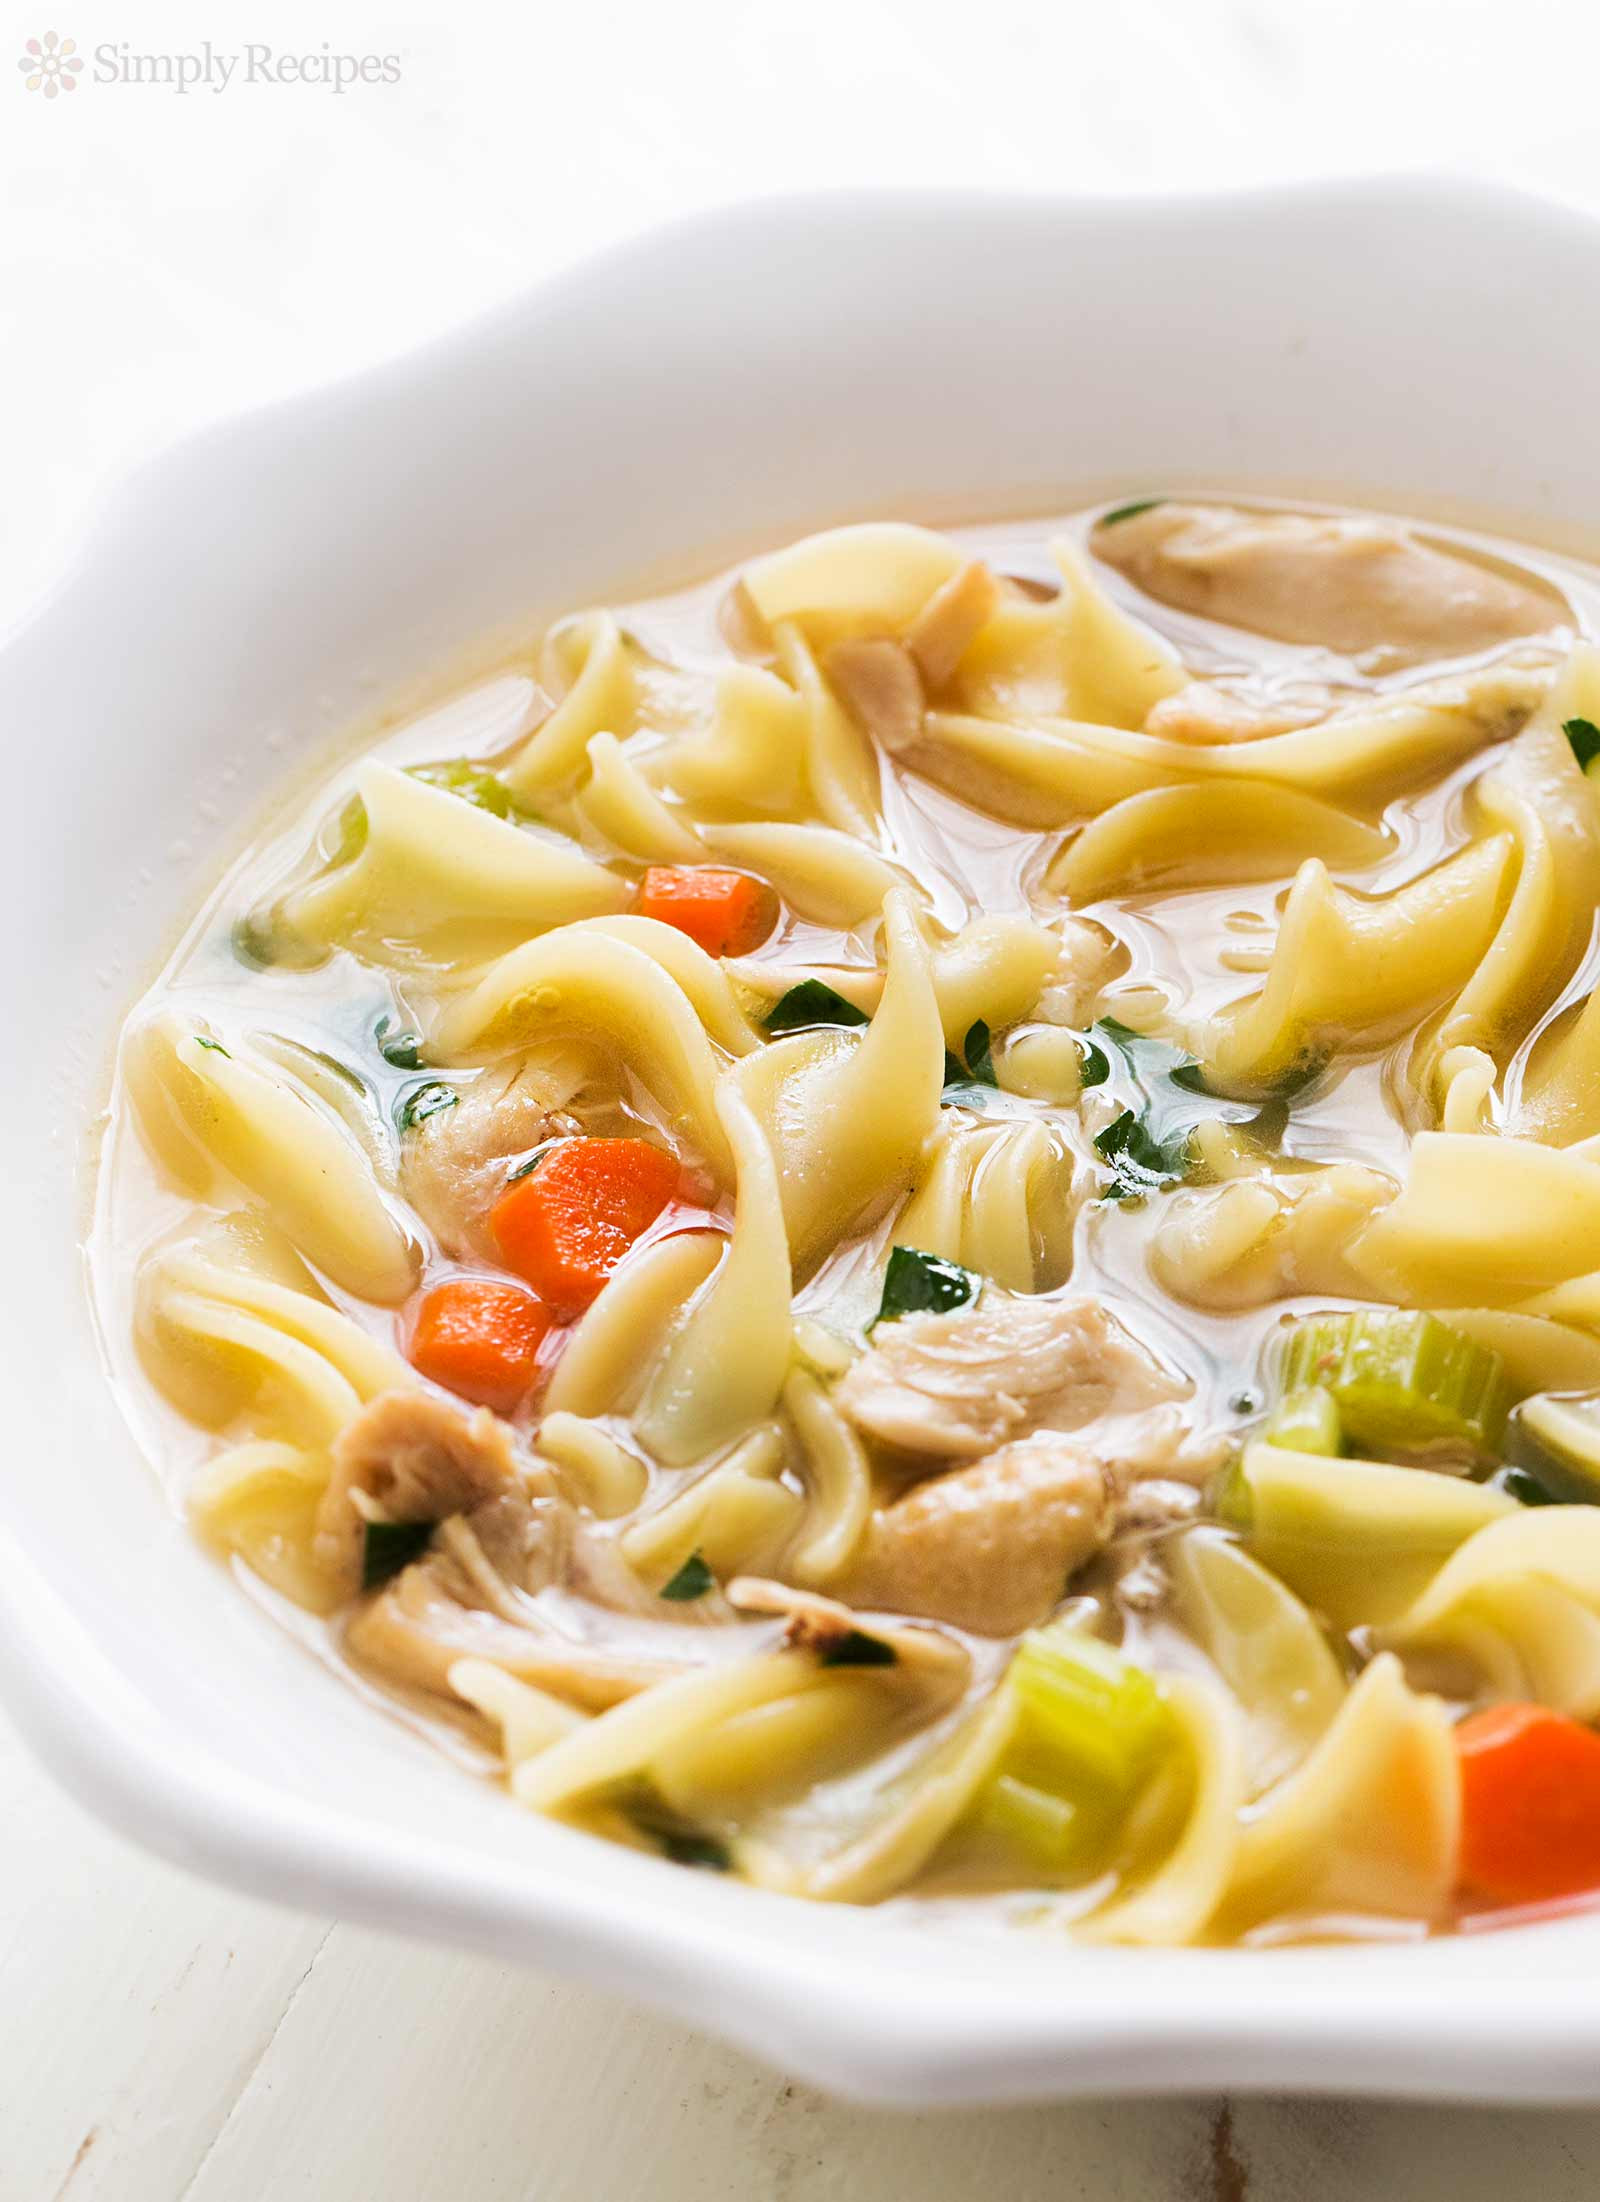 Homemade Chicken And Noodles  Homemade Chicken Noodle Soup Recipe